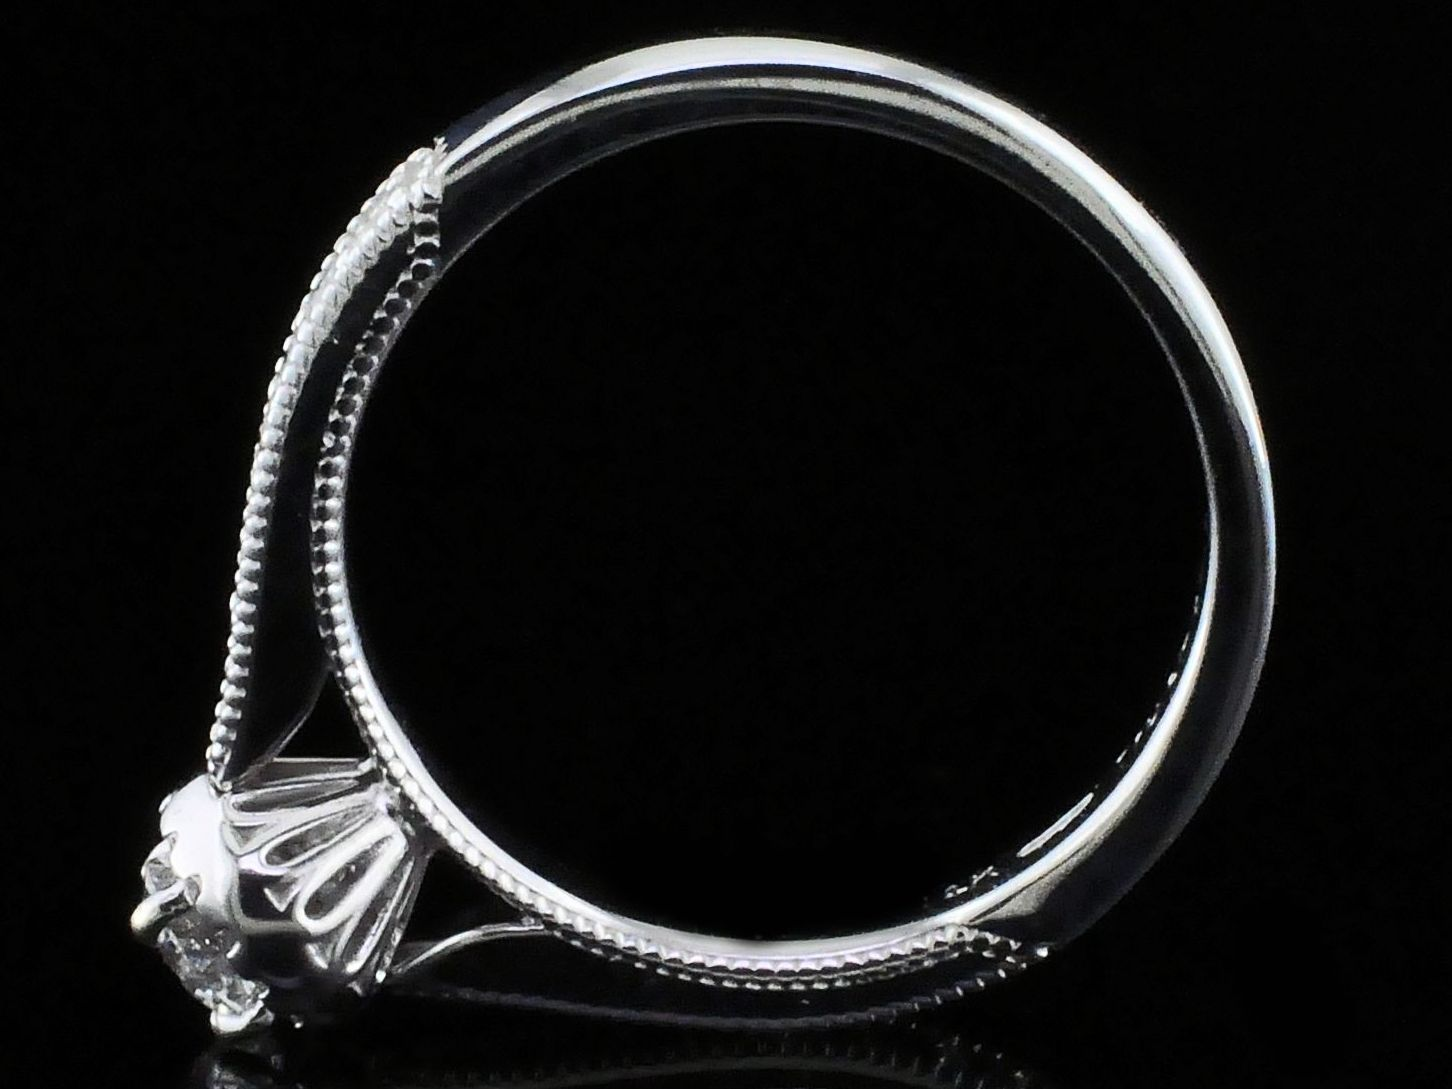 Diamond Engagement Rings - Hearts & Arrows Cut Diamond Engagement Ring - image #3